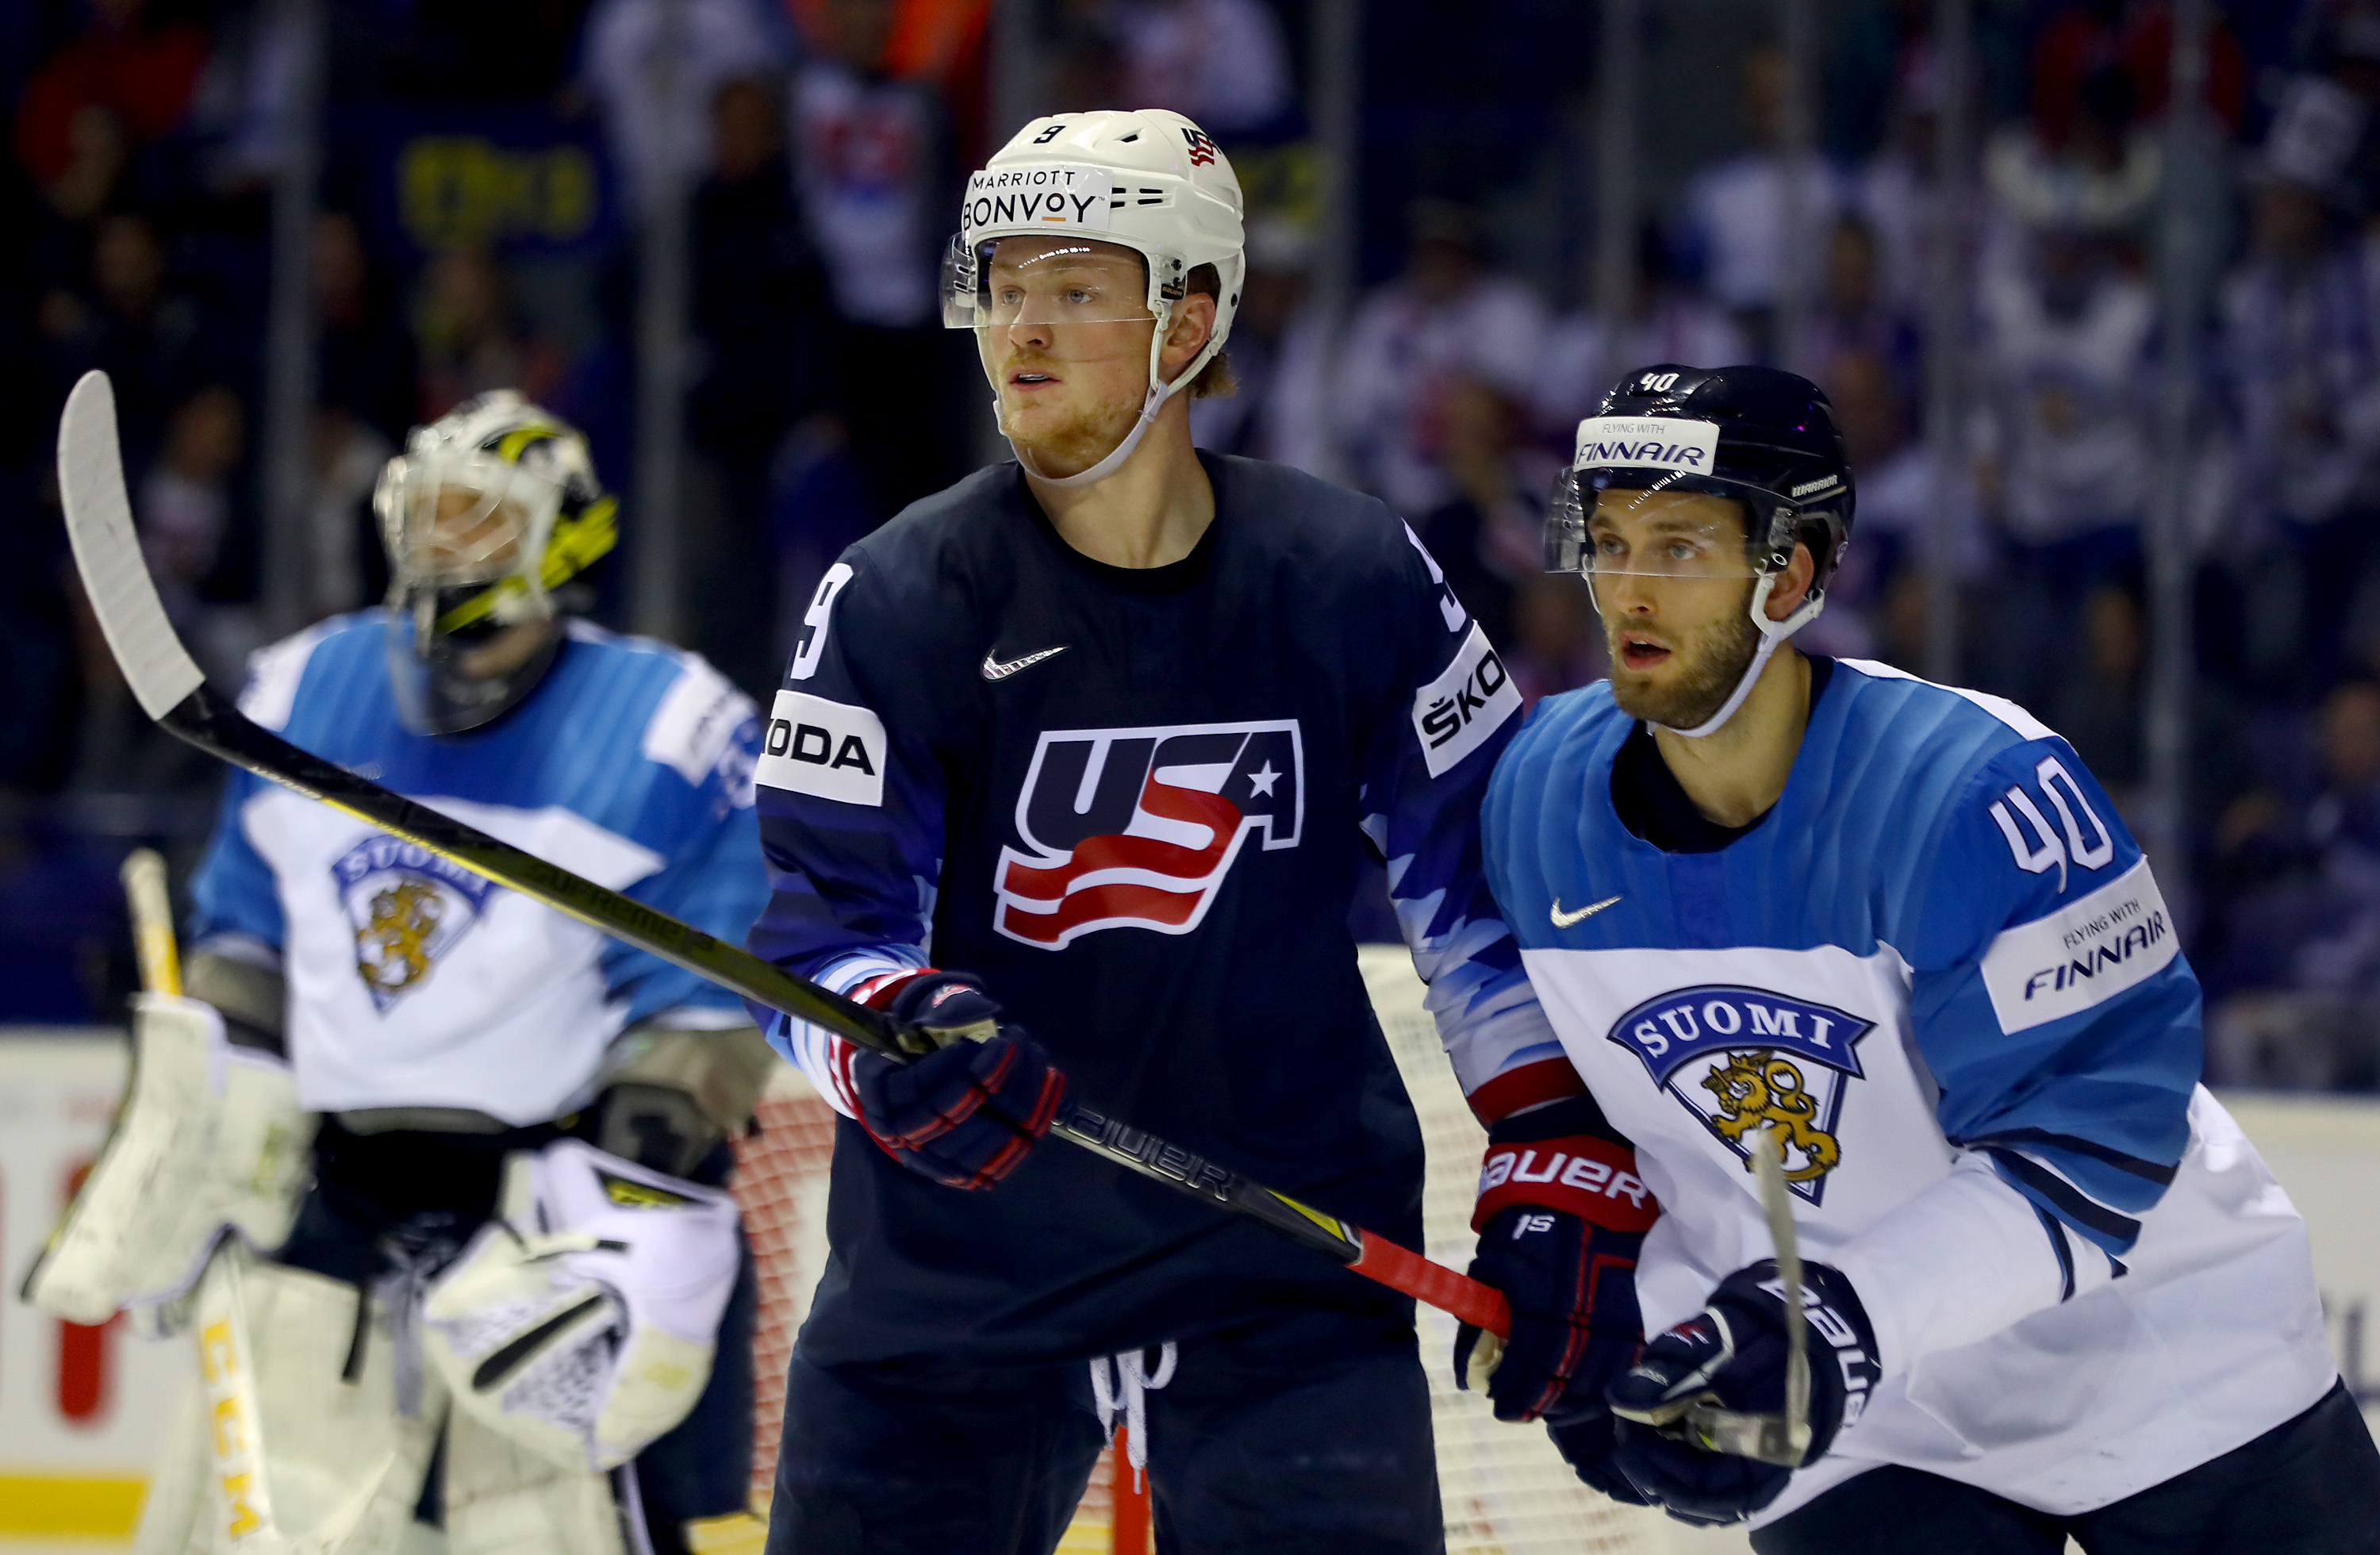 2019 Iihf World Championship Schedule May 15 2019 Eyes On The Prize